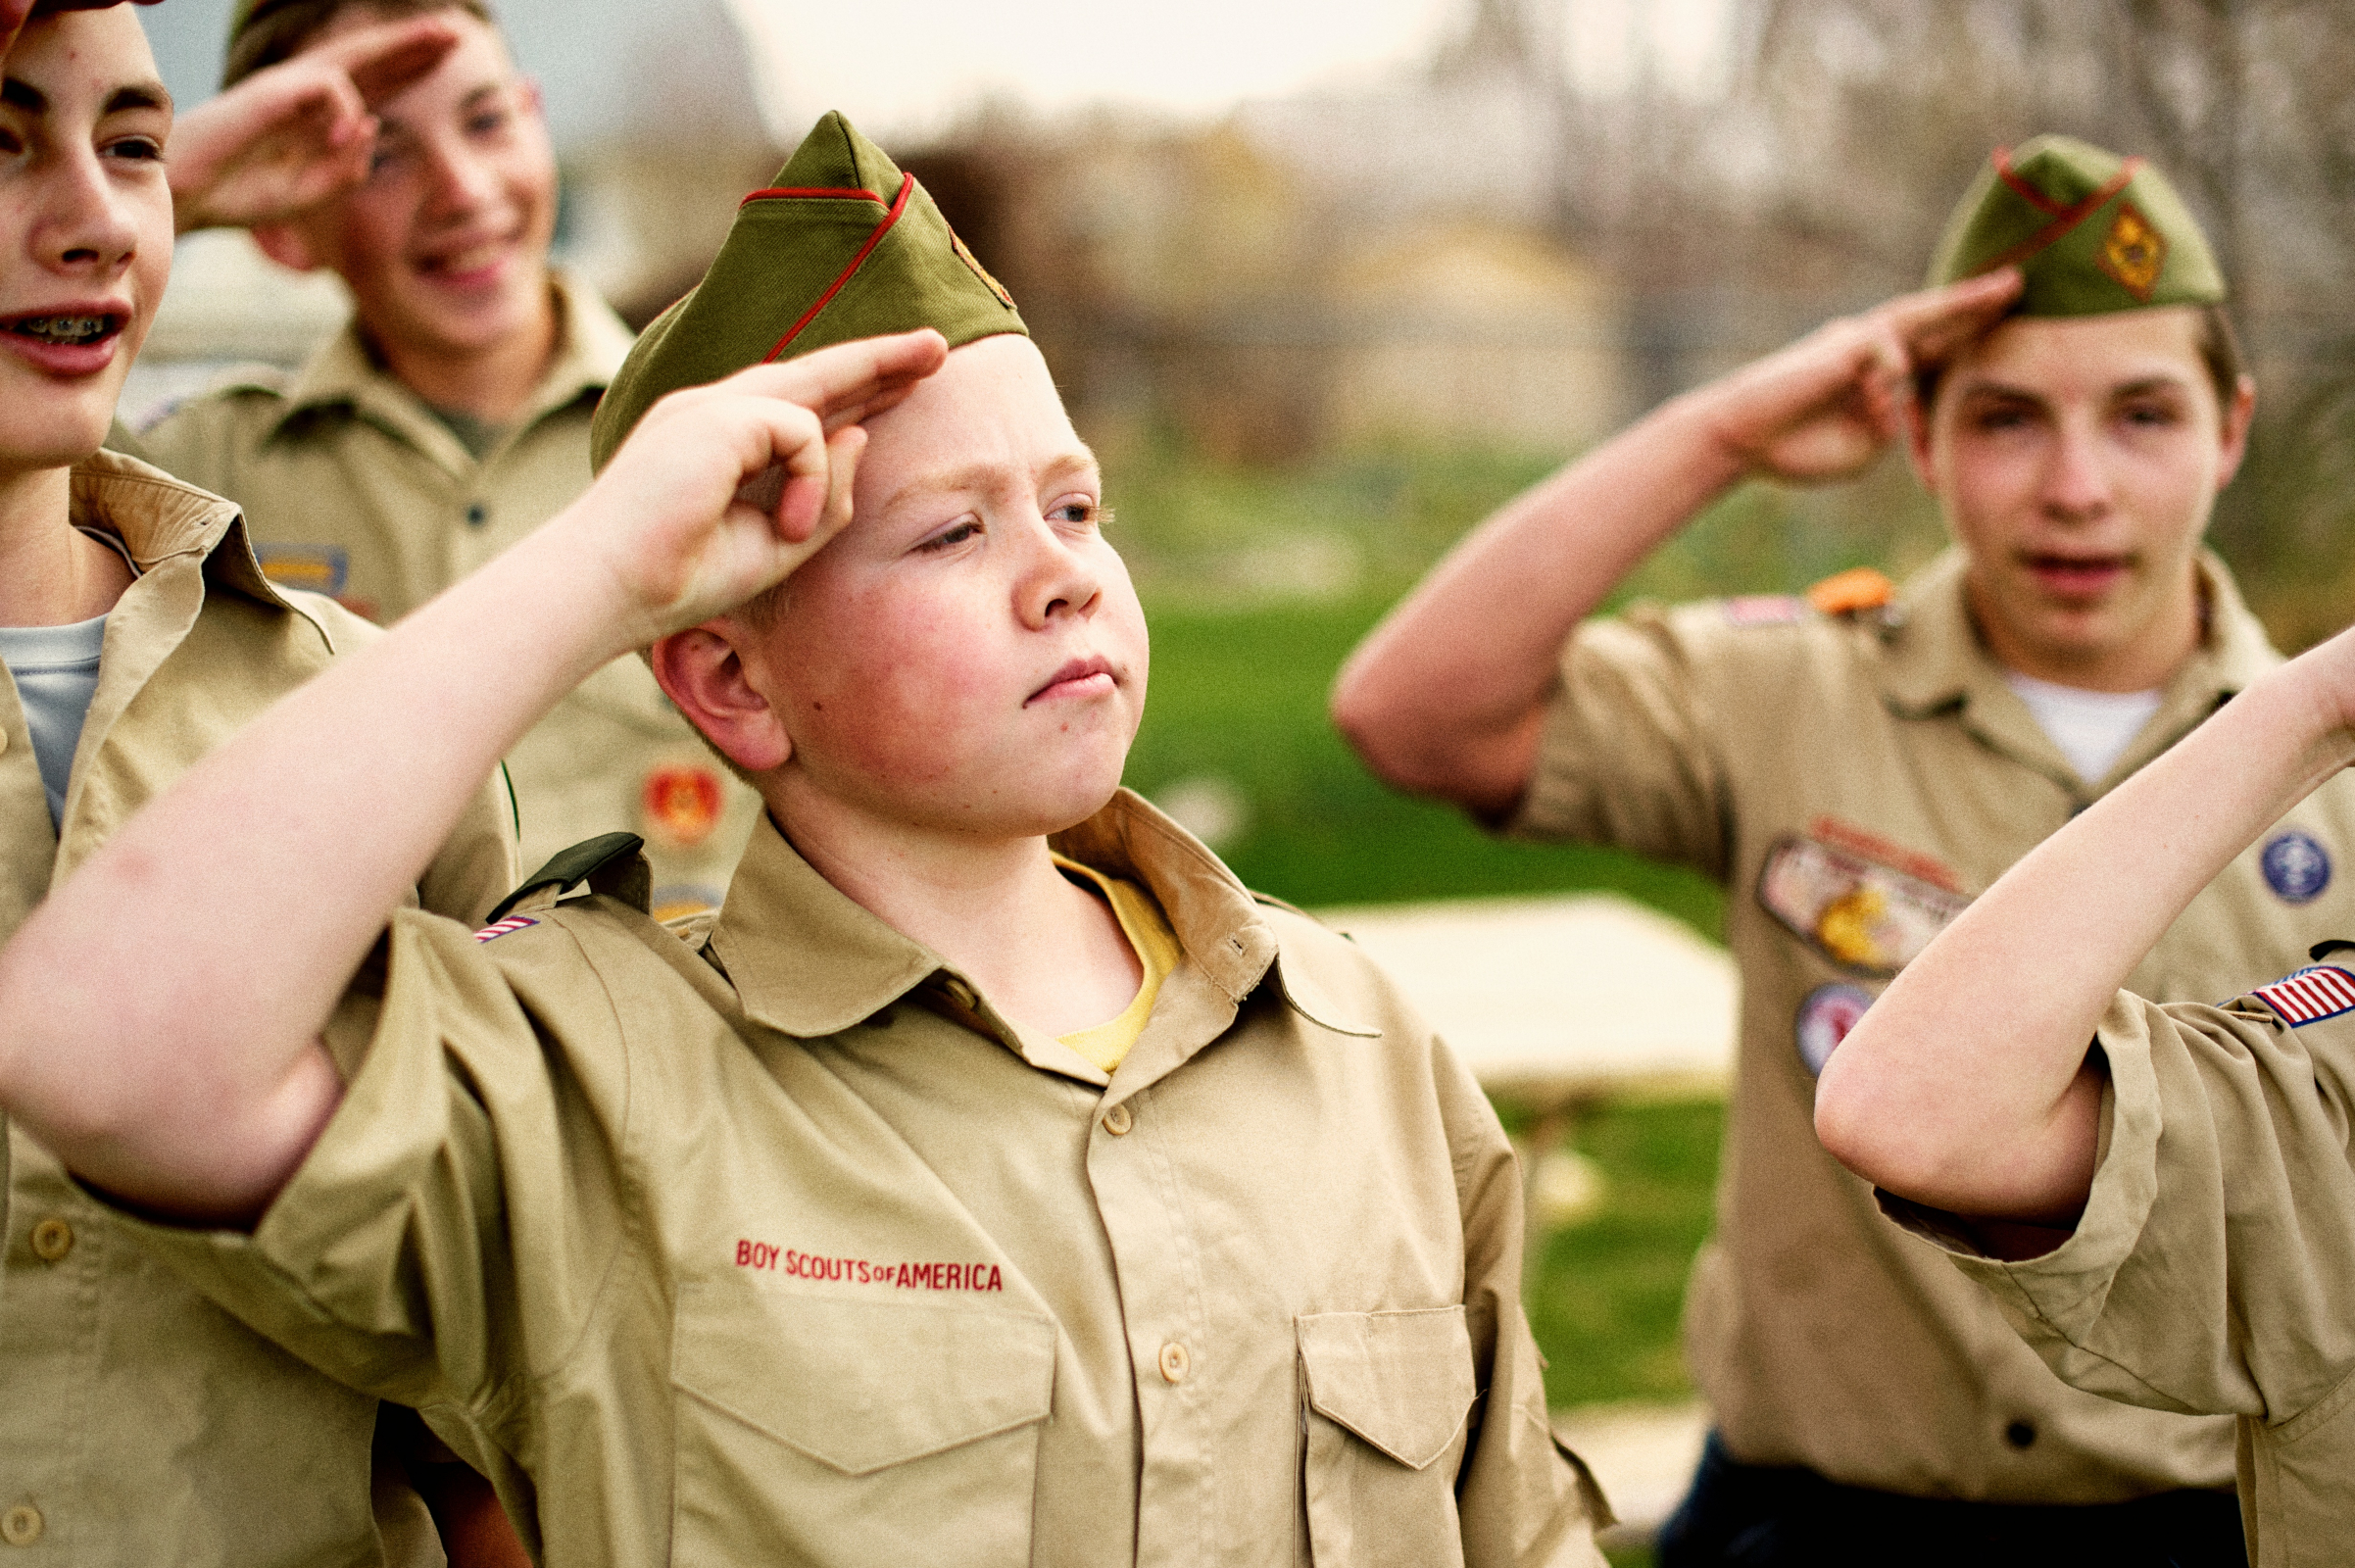 boy scout saluting the flag